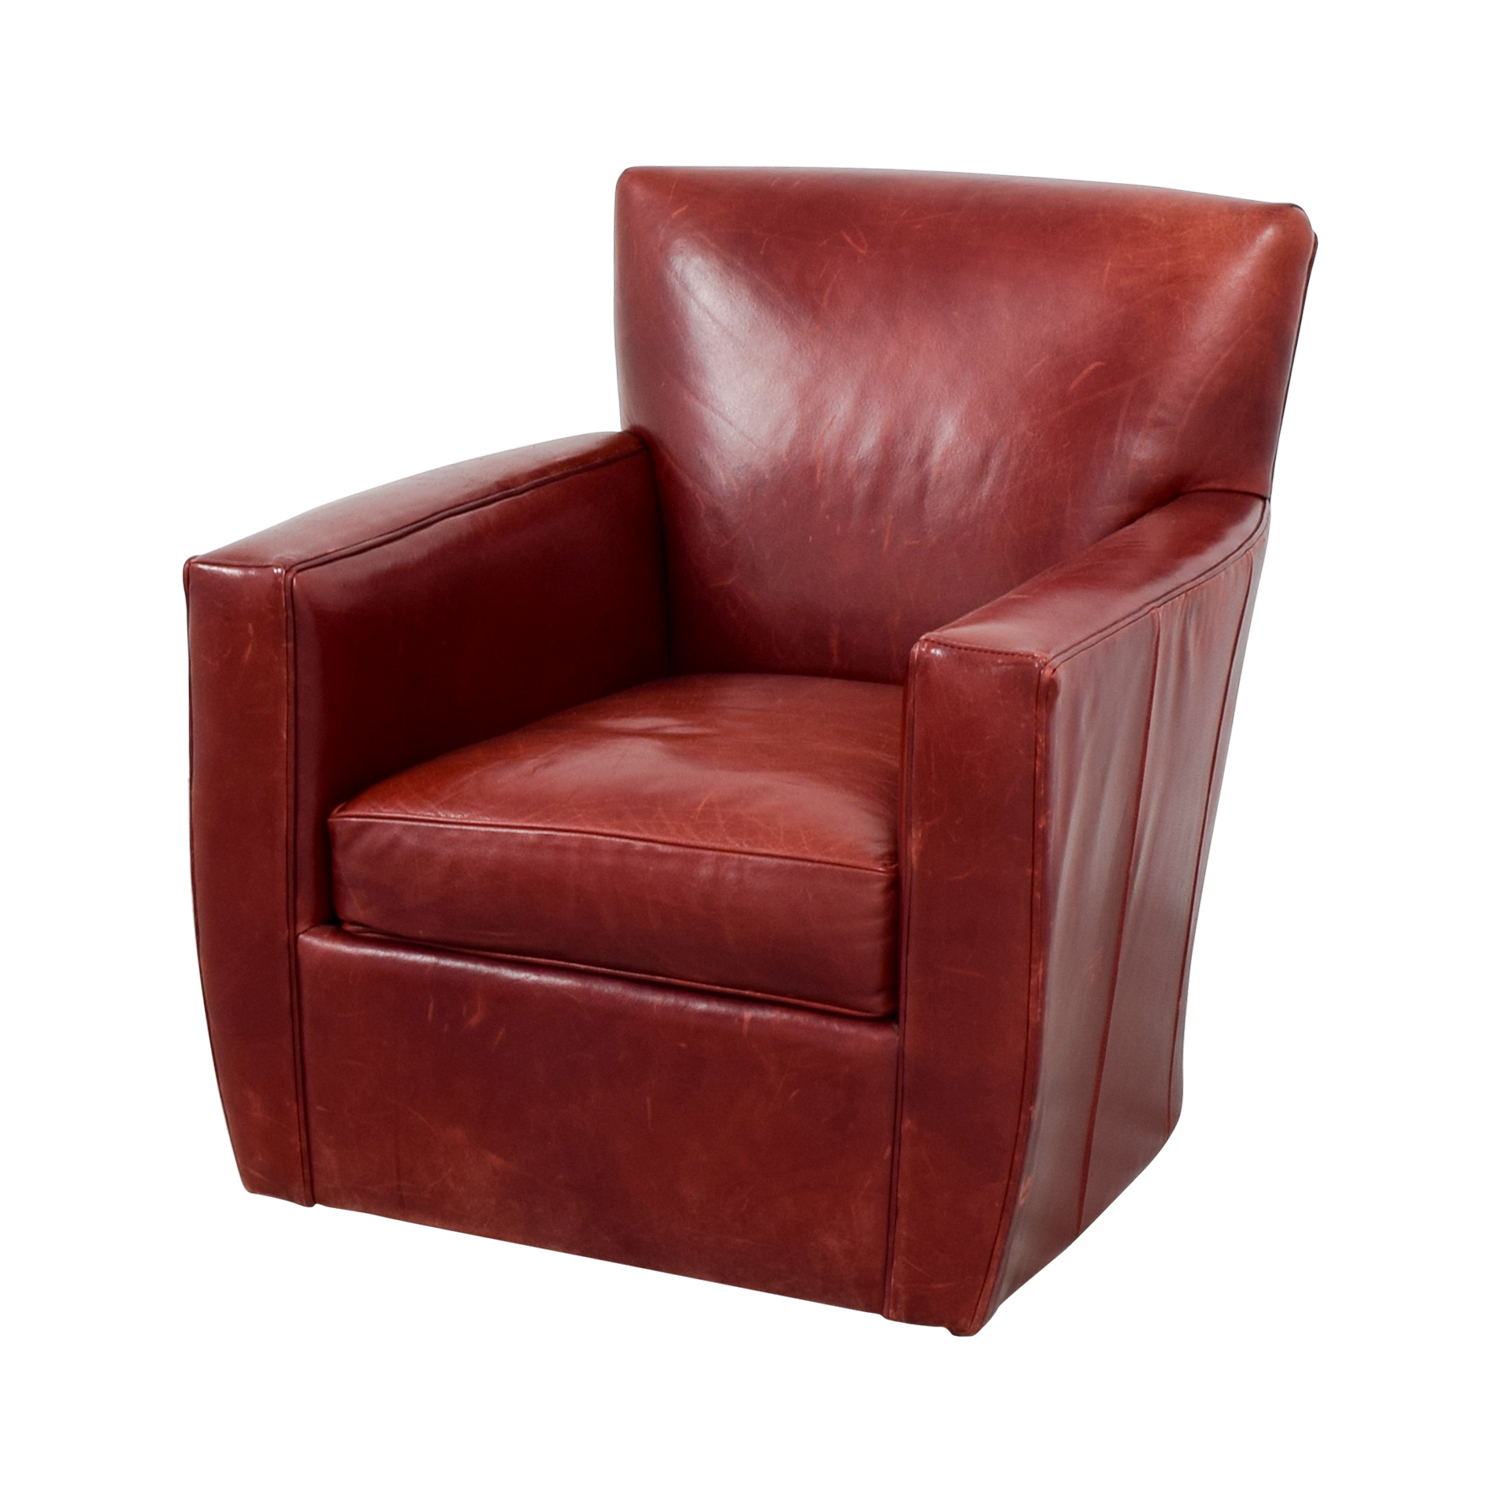 Genial ... Crate U0026 Barrel Crate U0026 Barrel Leather Swivel Chair Discount ...